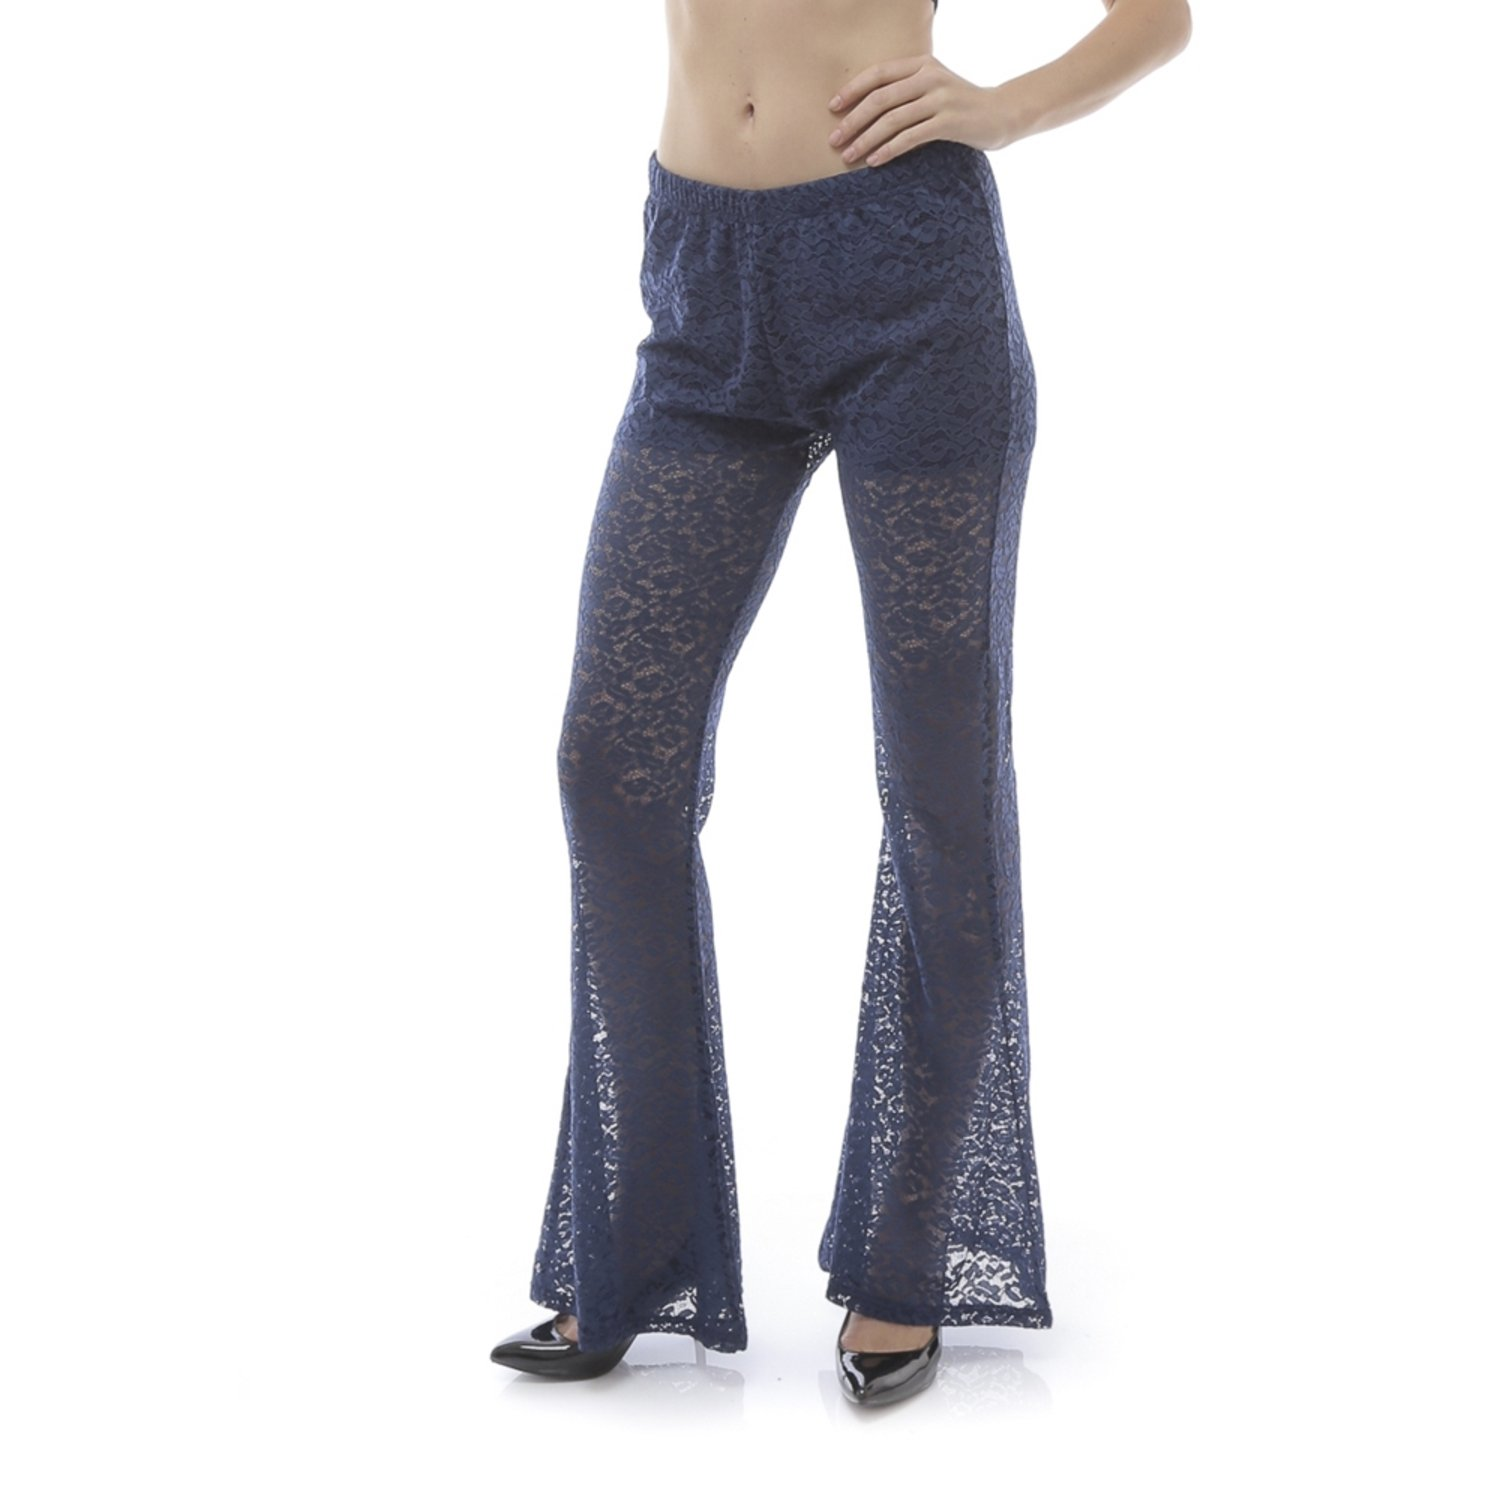 Emma's Mode Women's Lace Flared Pants with Inner Shorts